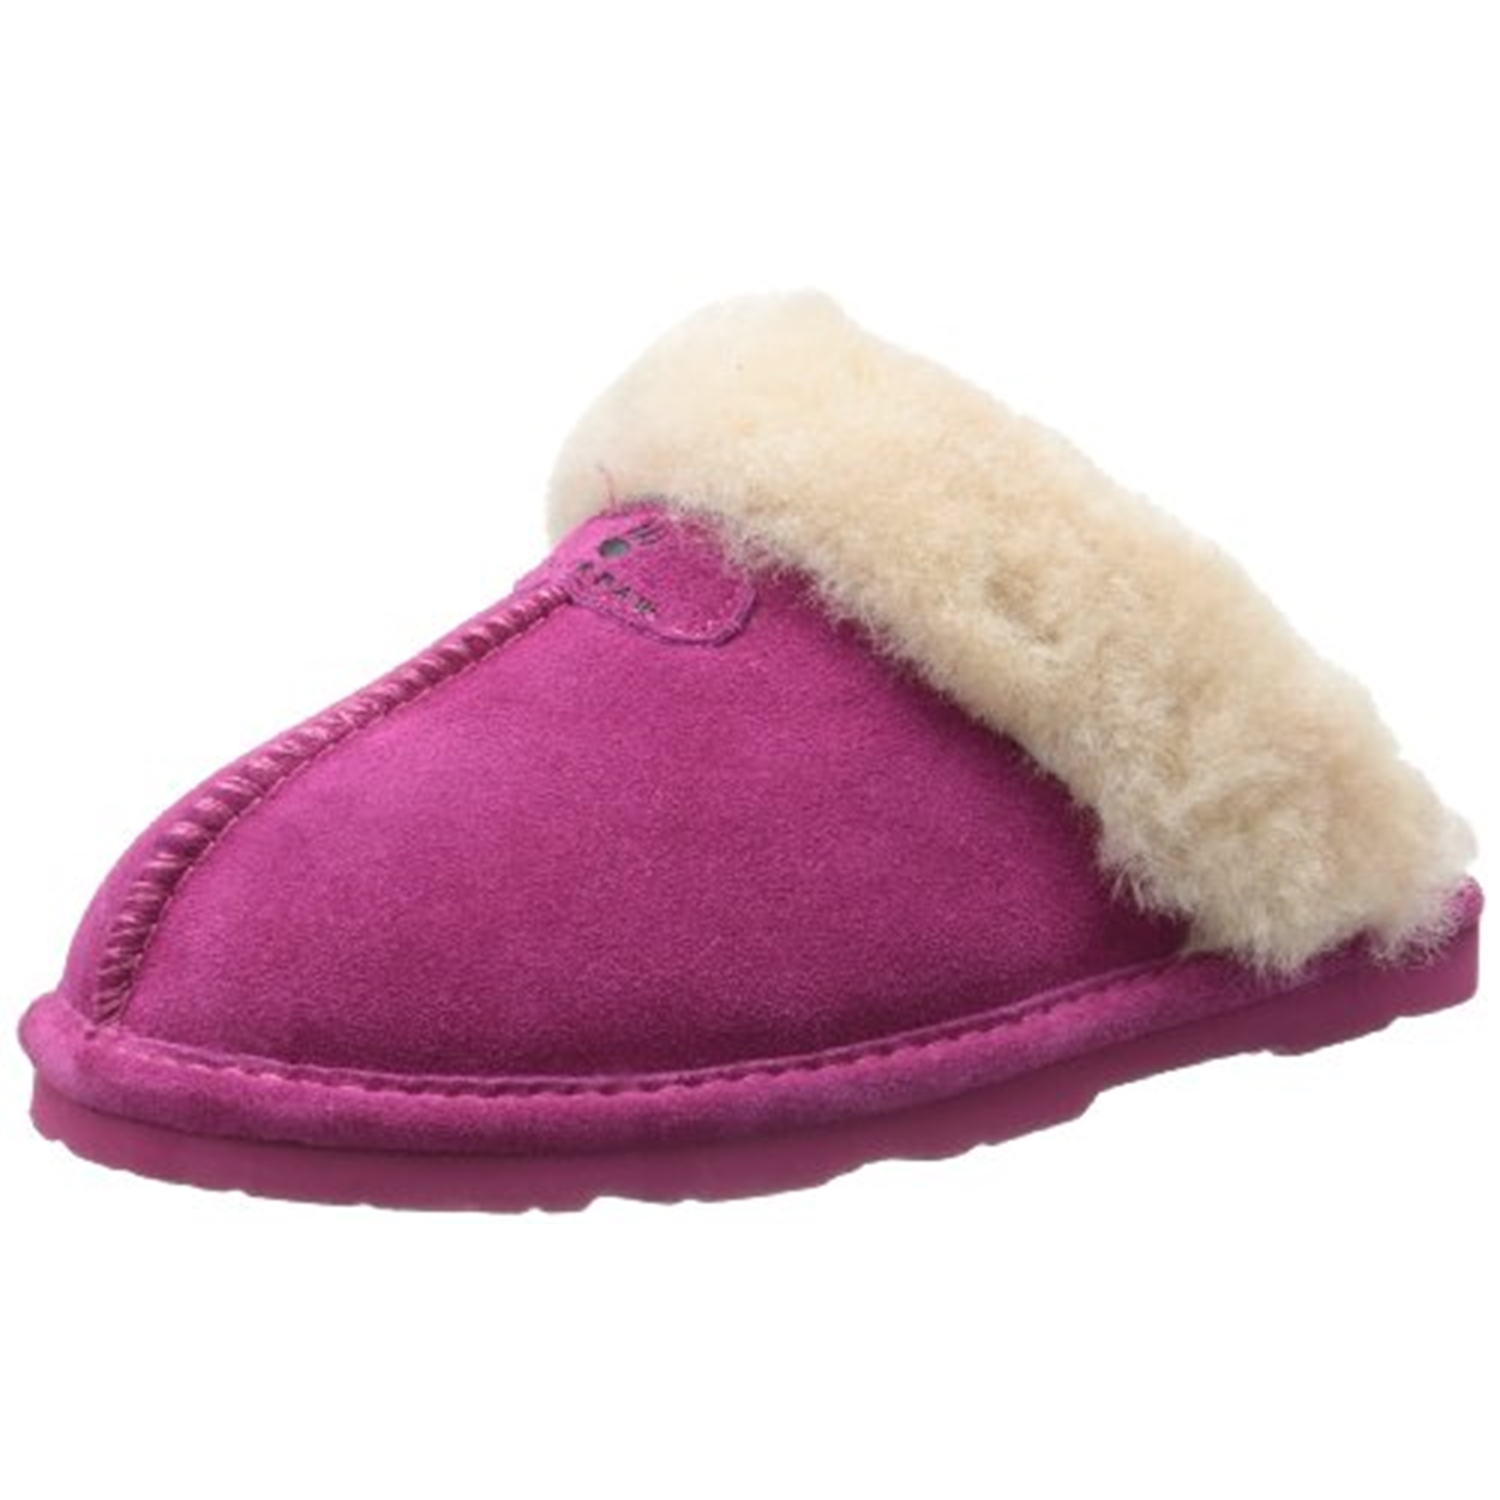 Bearpaw Women's Loki Pom Berry Low Top Sheepskin Slipper - 6M